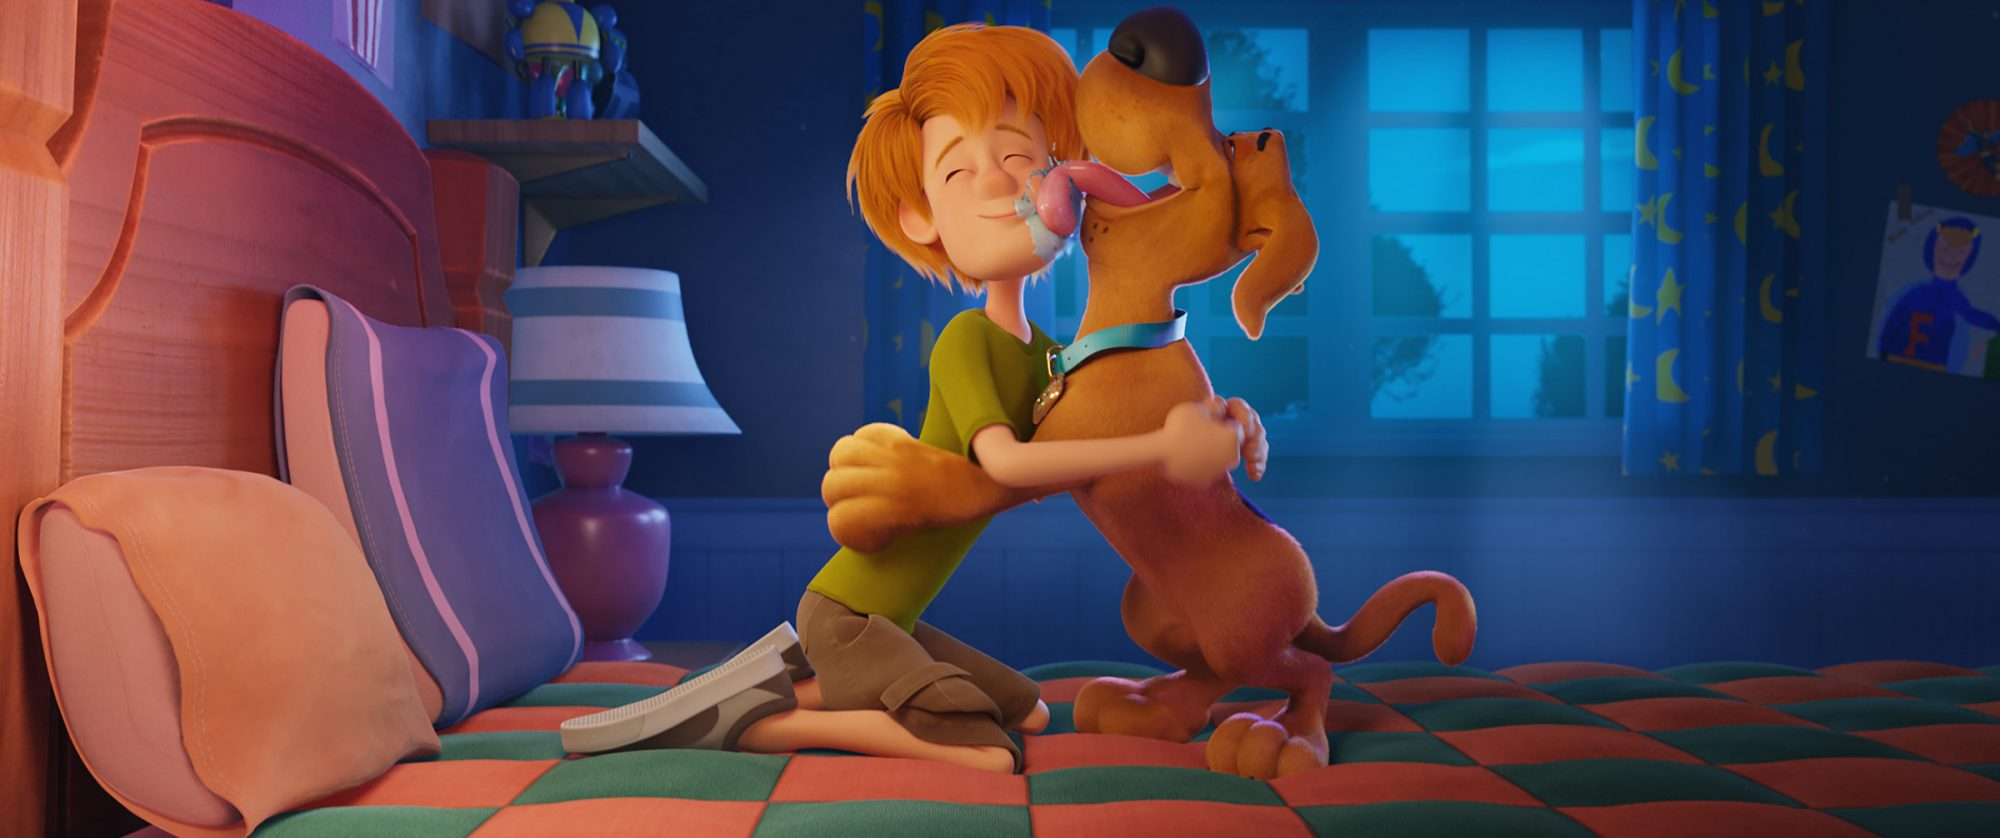 "Caption: (L-r) Shaggy voiced by WILL FORTE and Scooby-Doo voiced by FRANK WELKER in the new animated adventure ""SCOOB!"" from Warner Bros. Pictures and Warner Animation Group."